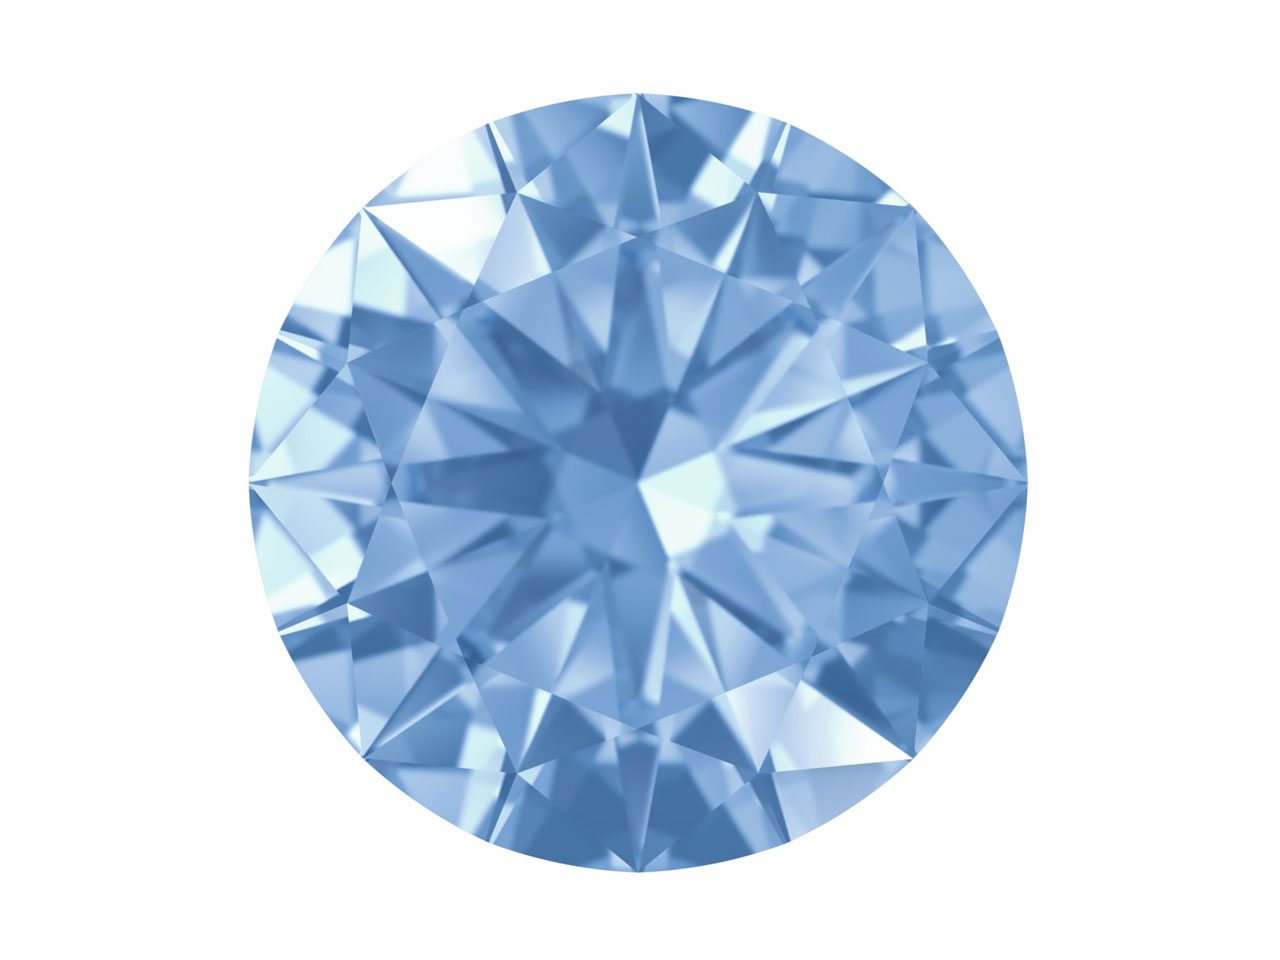 Swarovski Gemstones Blue Sapphire  Round Brilliant Cut 1.75mm Very    Light Blue